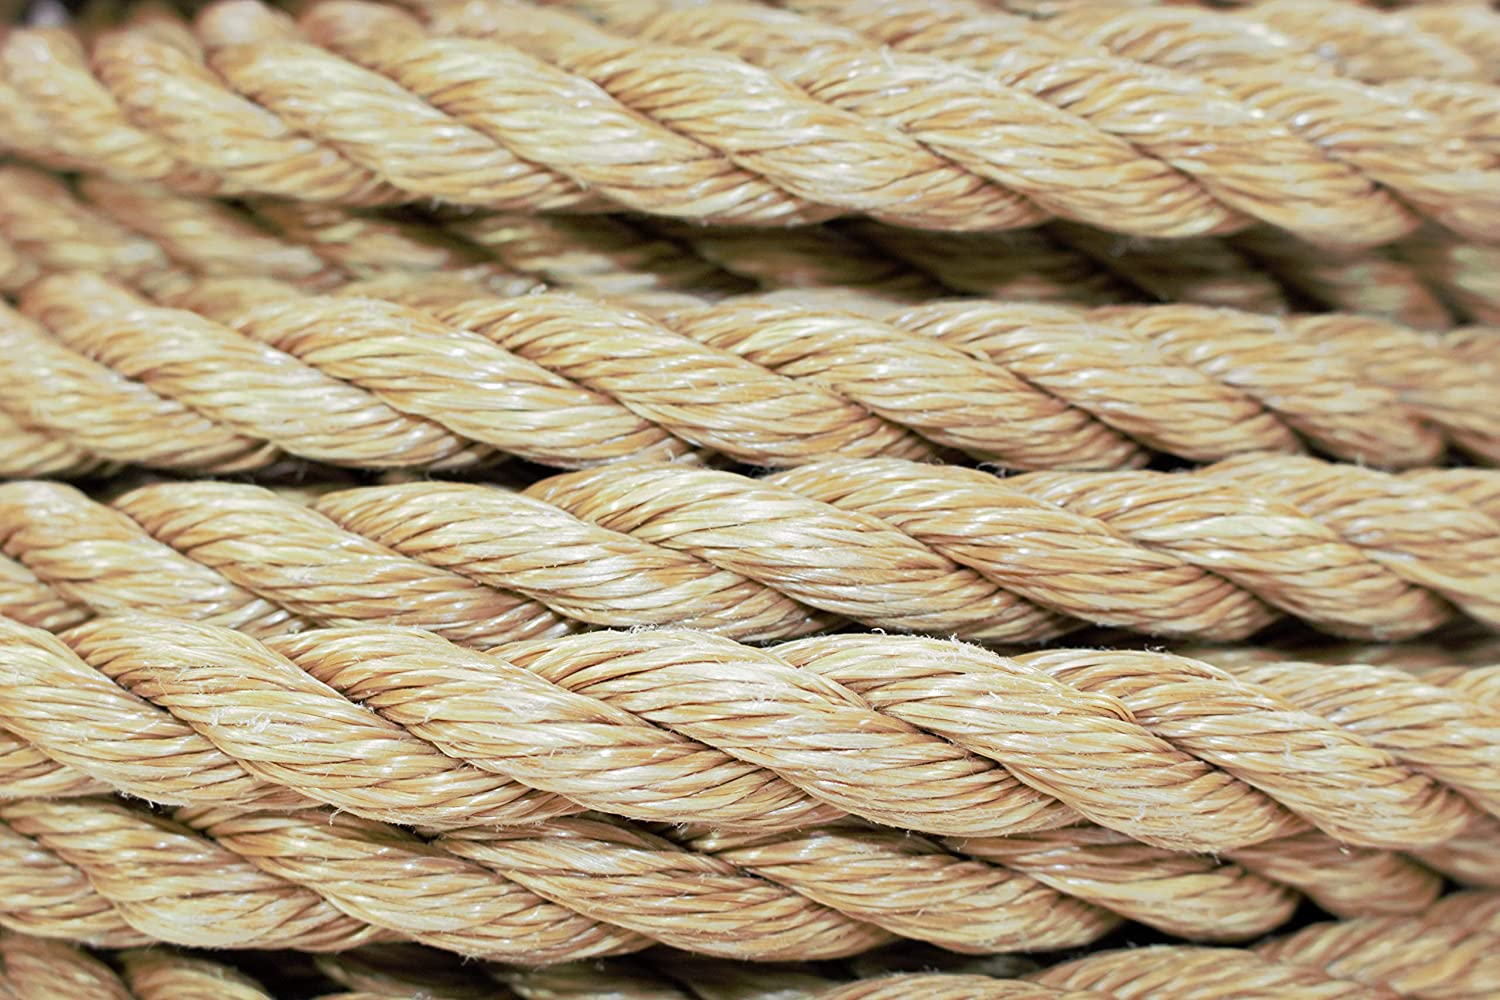 and Chemical Resistant UnManila Tan Twisted 3 Strand Polypropylene Cord DIY Projects SGT KNOTS ProManila Rope Marine Indoor//Outdoor 10 ft Crafts UV Moisture 2 inch Commercial